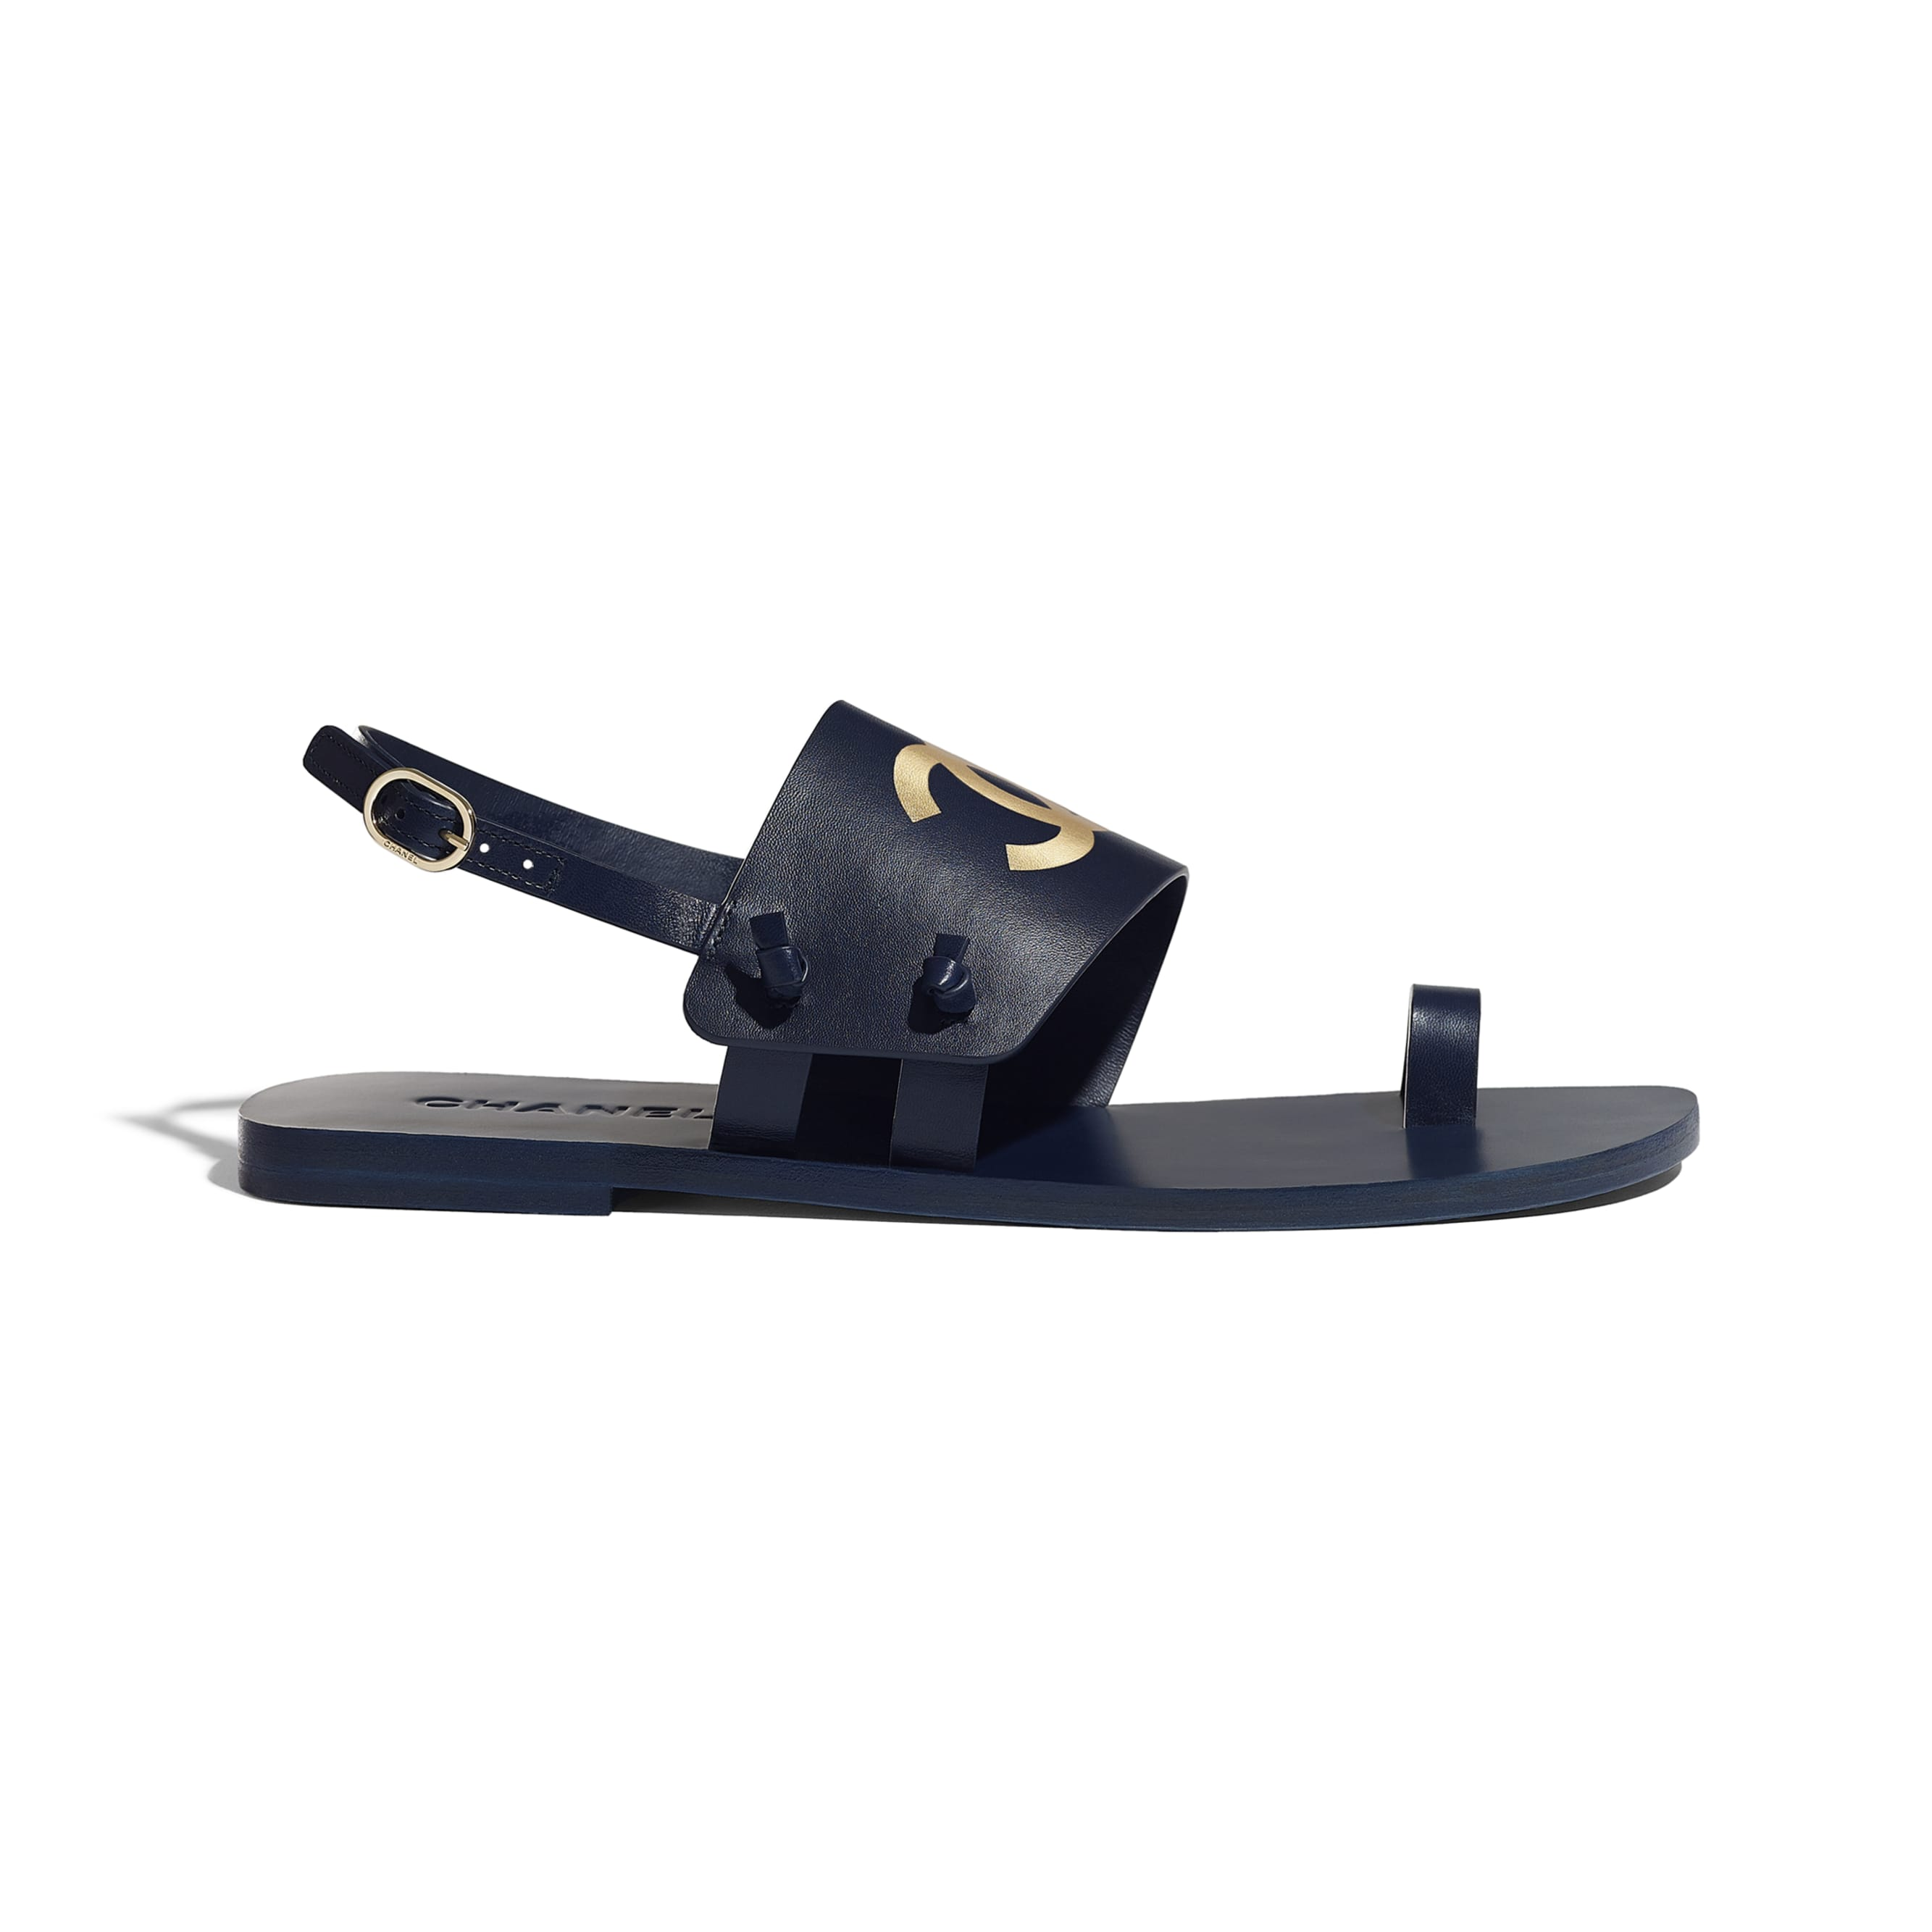 Sandals - Navy Blue - Goatskin - CHANEL - Default view - see standard sized version